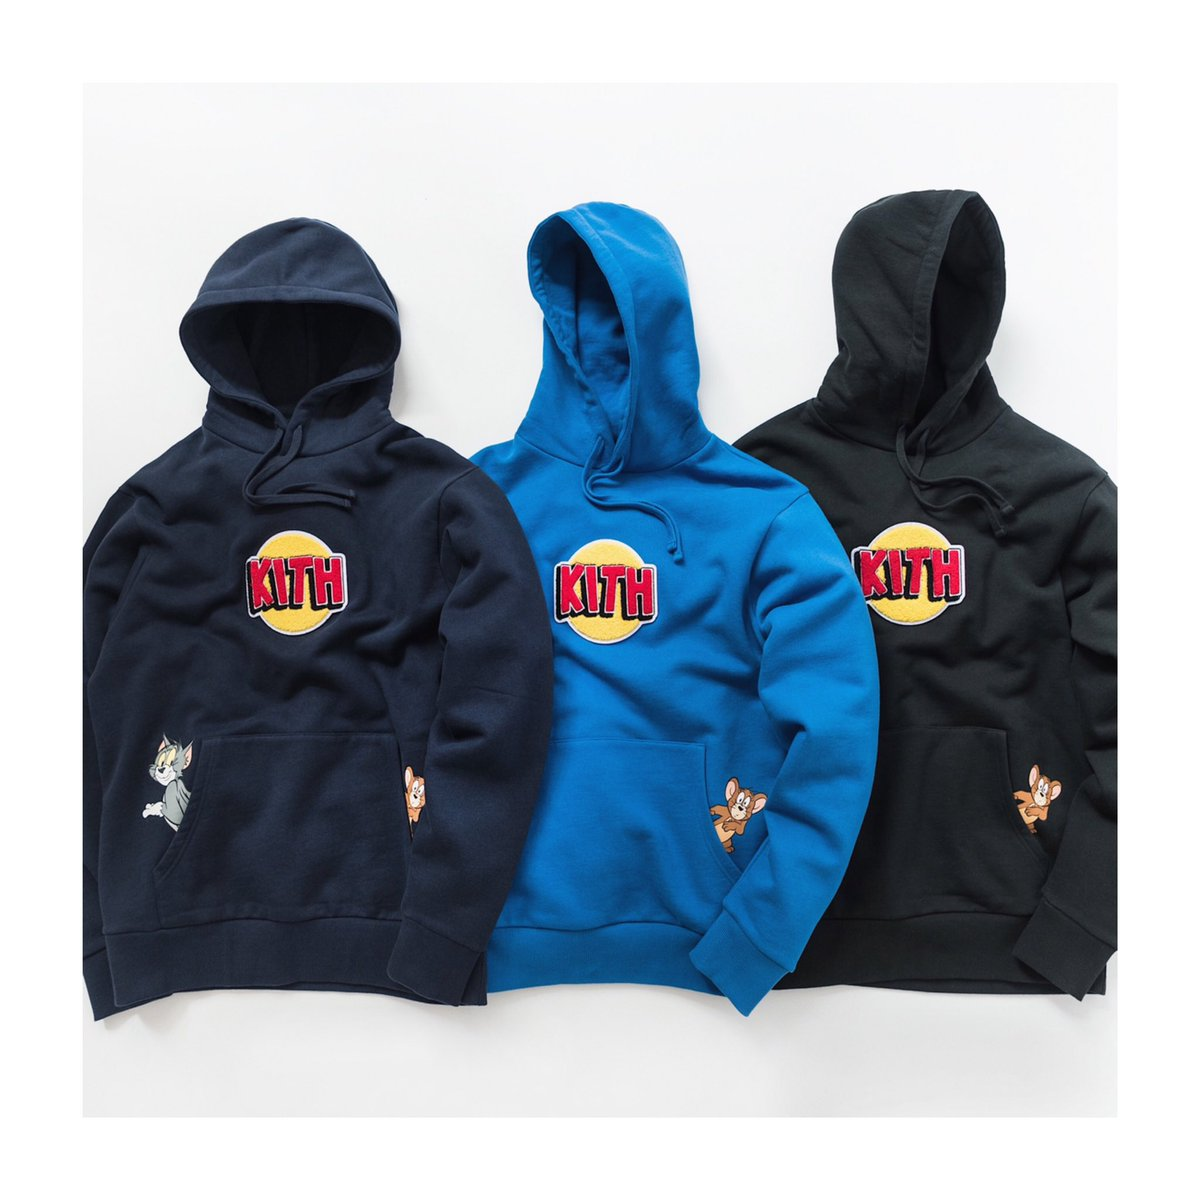 b4ca7b96a Releasing in 3 styles this Monday at all Kith shops and at at 11AM EST on  http://Kith.com .pic.twitter.com/ToW9HoX6eB